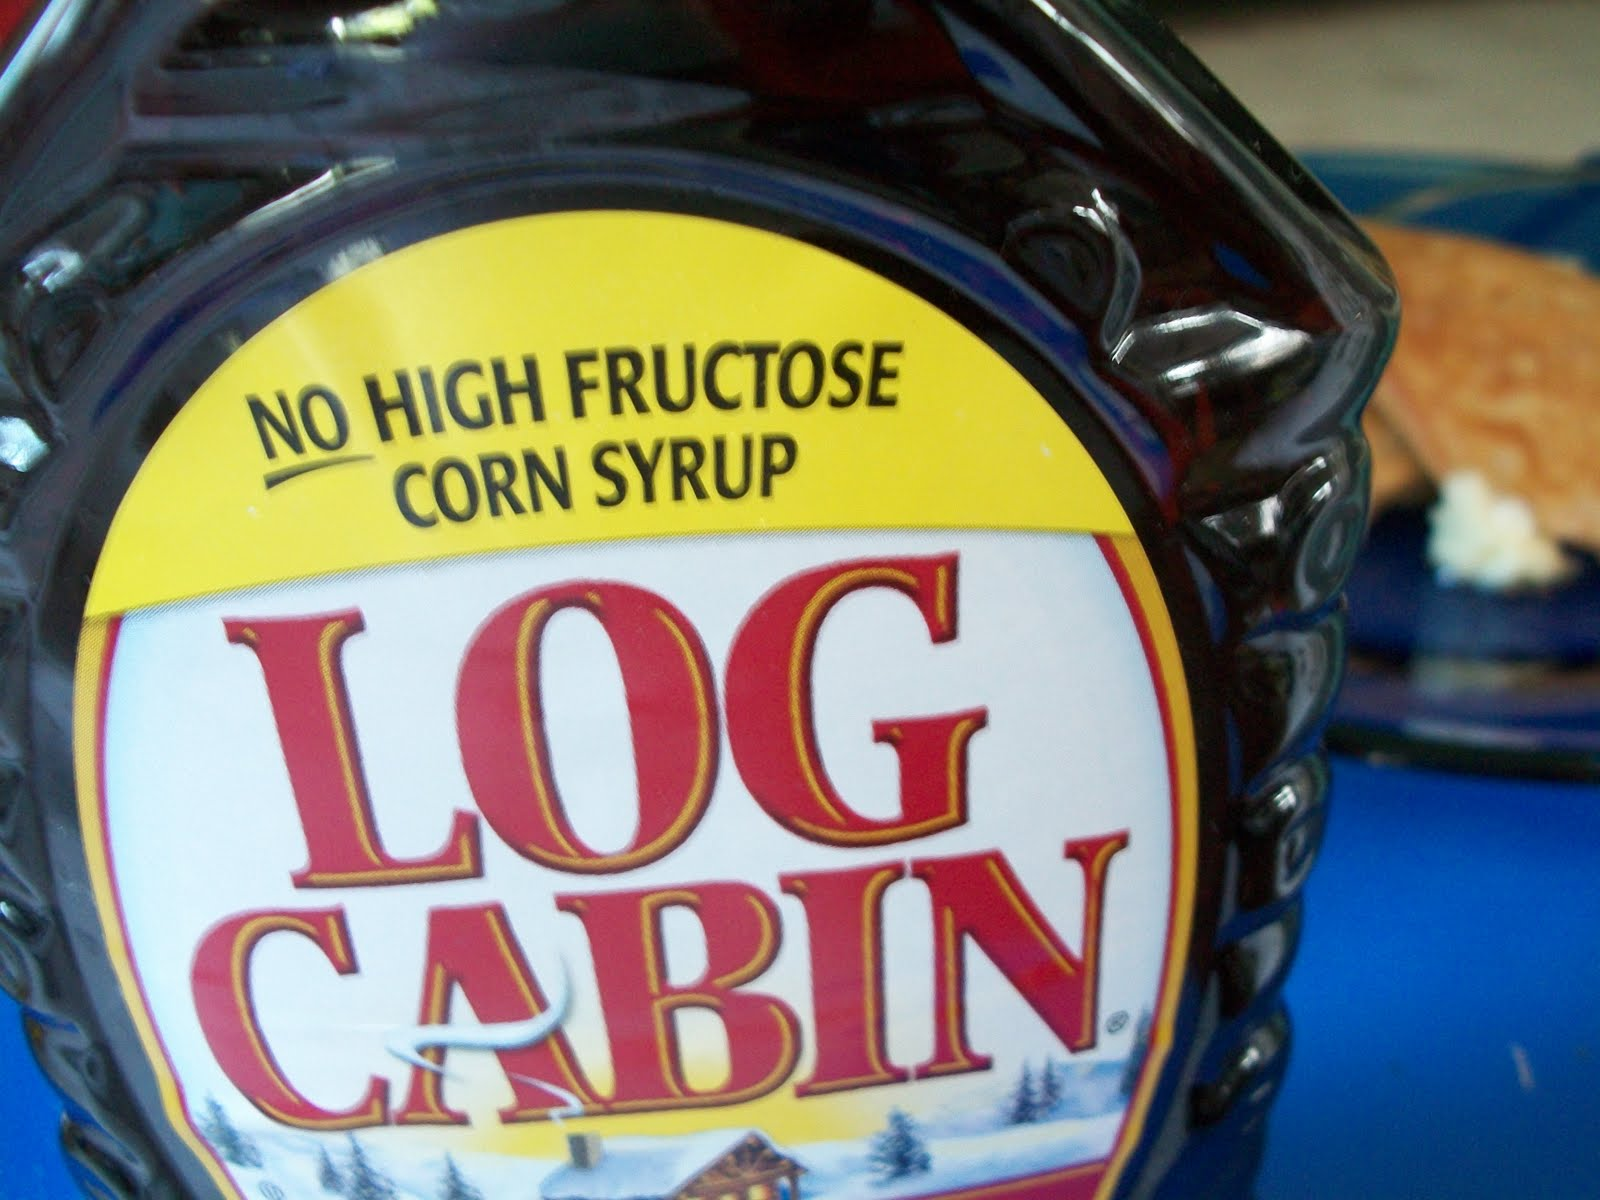 High Fructose Corn Syrup: The Real Story